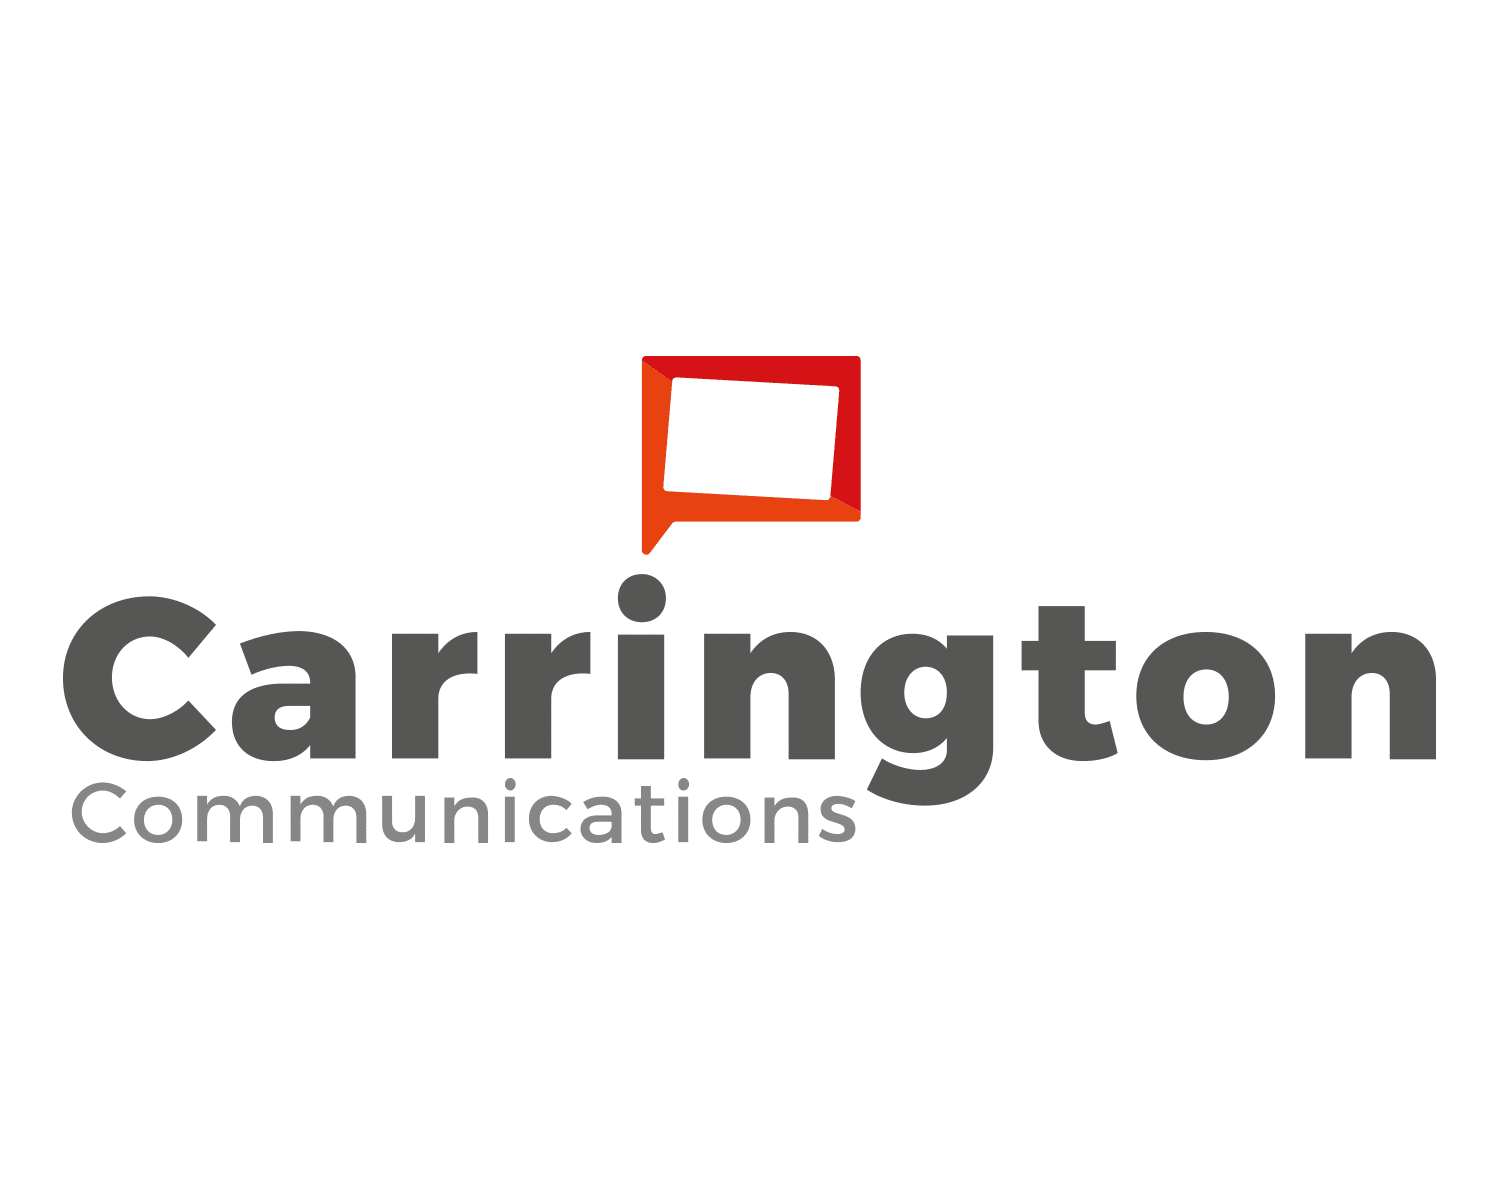 Carrington Communications logo